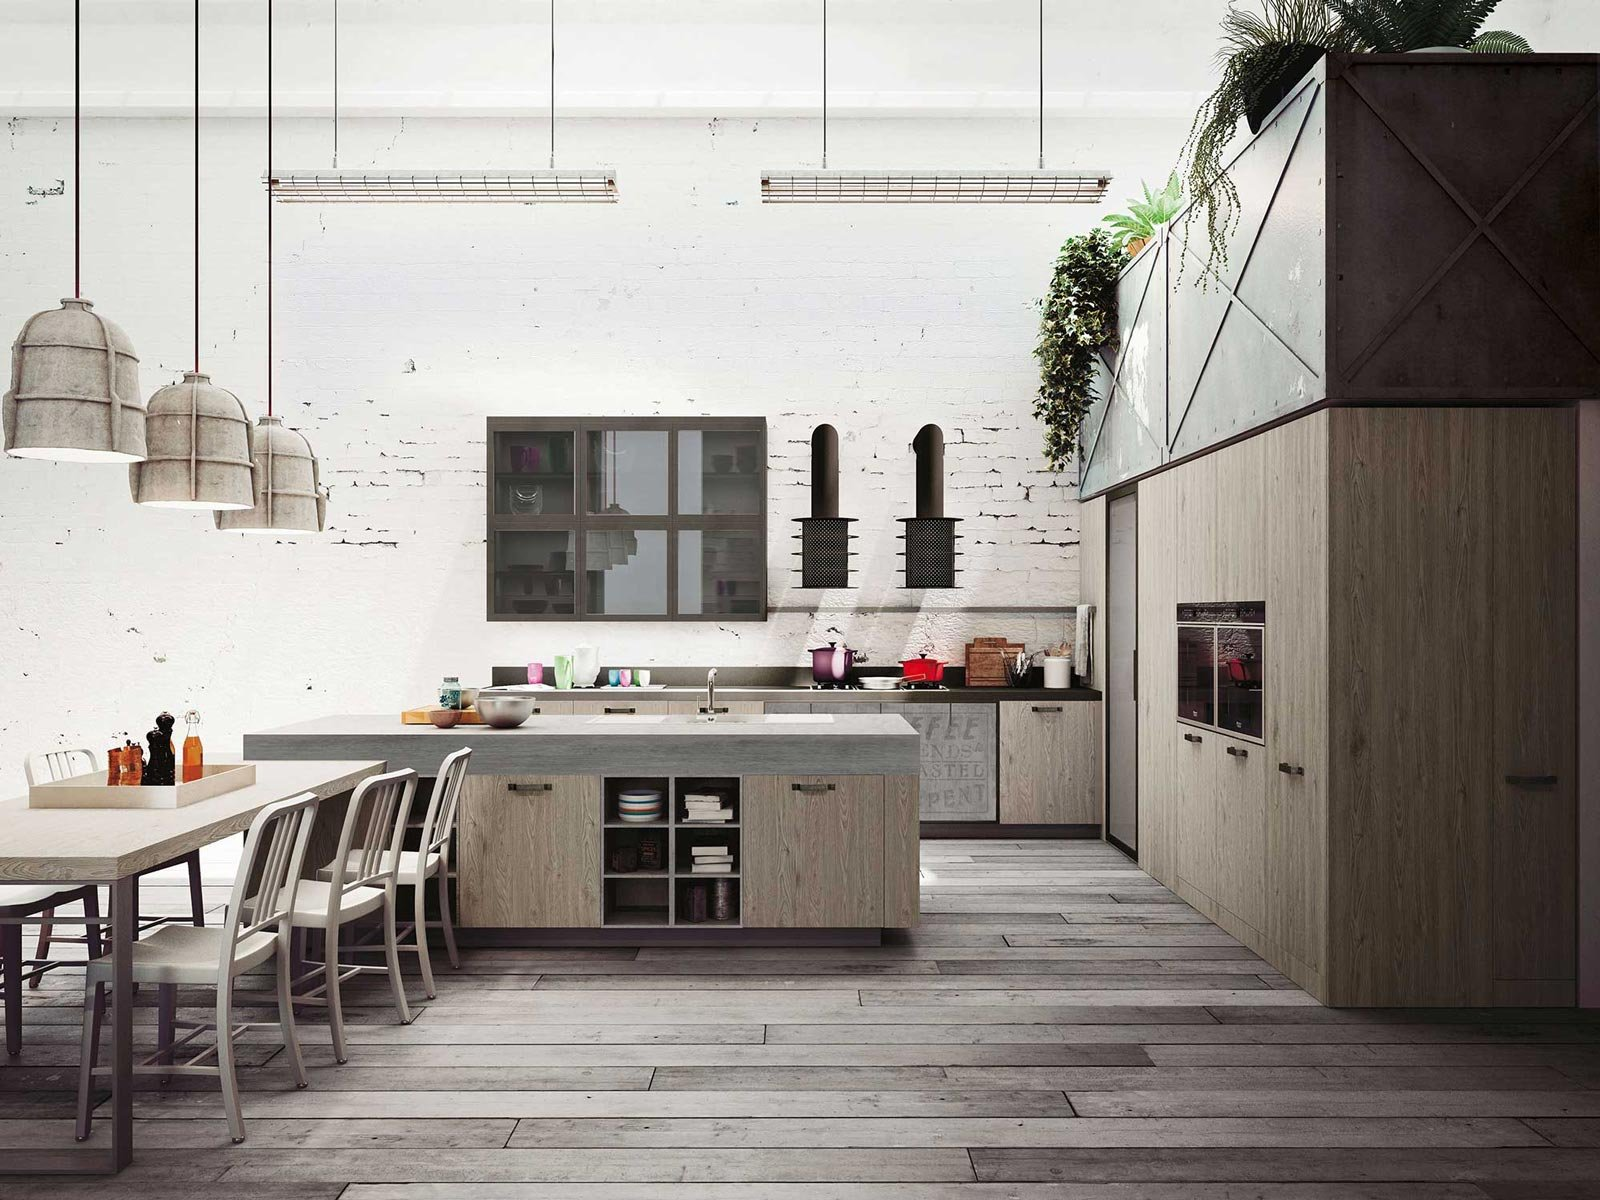 kitchen loft design with Cucine Industrial Style Loft Di Snaidero 46785 on Pia De Banheiro De Luxo moreover Mountain Modern Home Martis C in addition Remodelled Rooftop Apartment In New York furthermore Cucina Con Soffitto Basso 8283 also 10 Inspirations Pour Une Cuisine Industrielle 1171193.